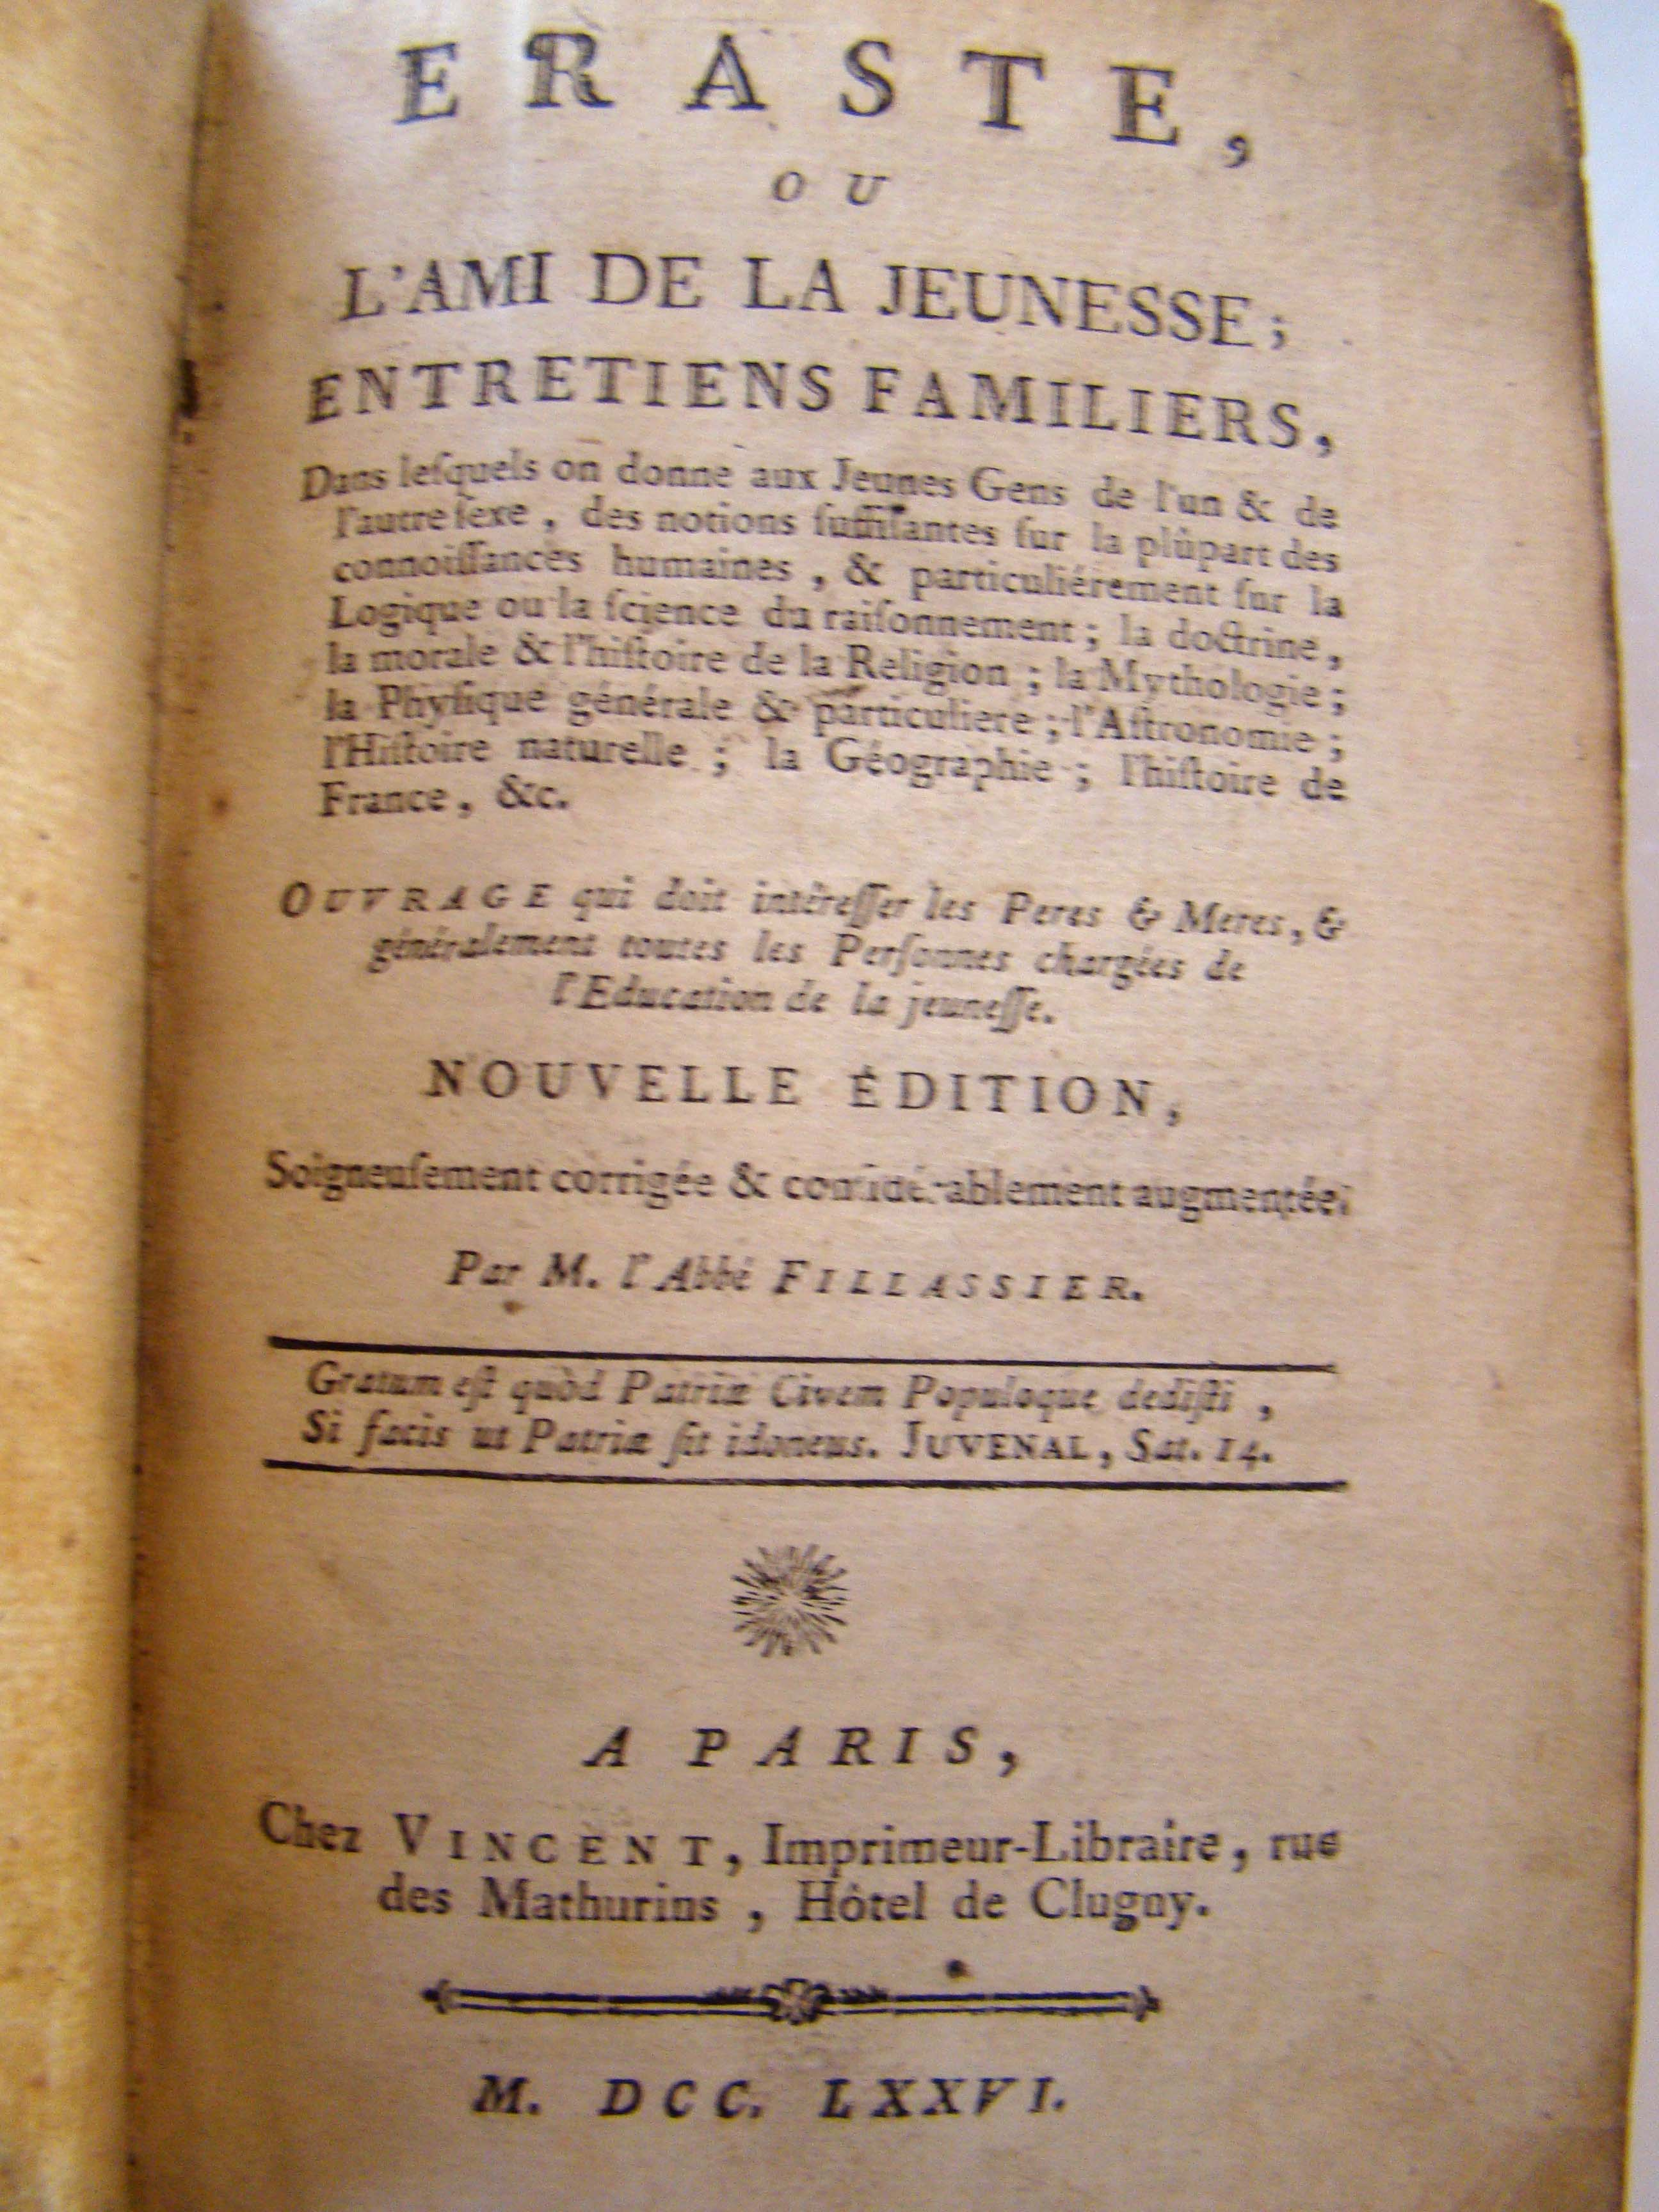 click to view detailed description of Eraste, ou l ami de la Jeunesse by M. Fillassier printed in Paris in 1776